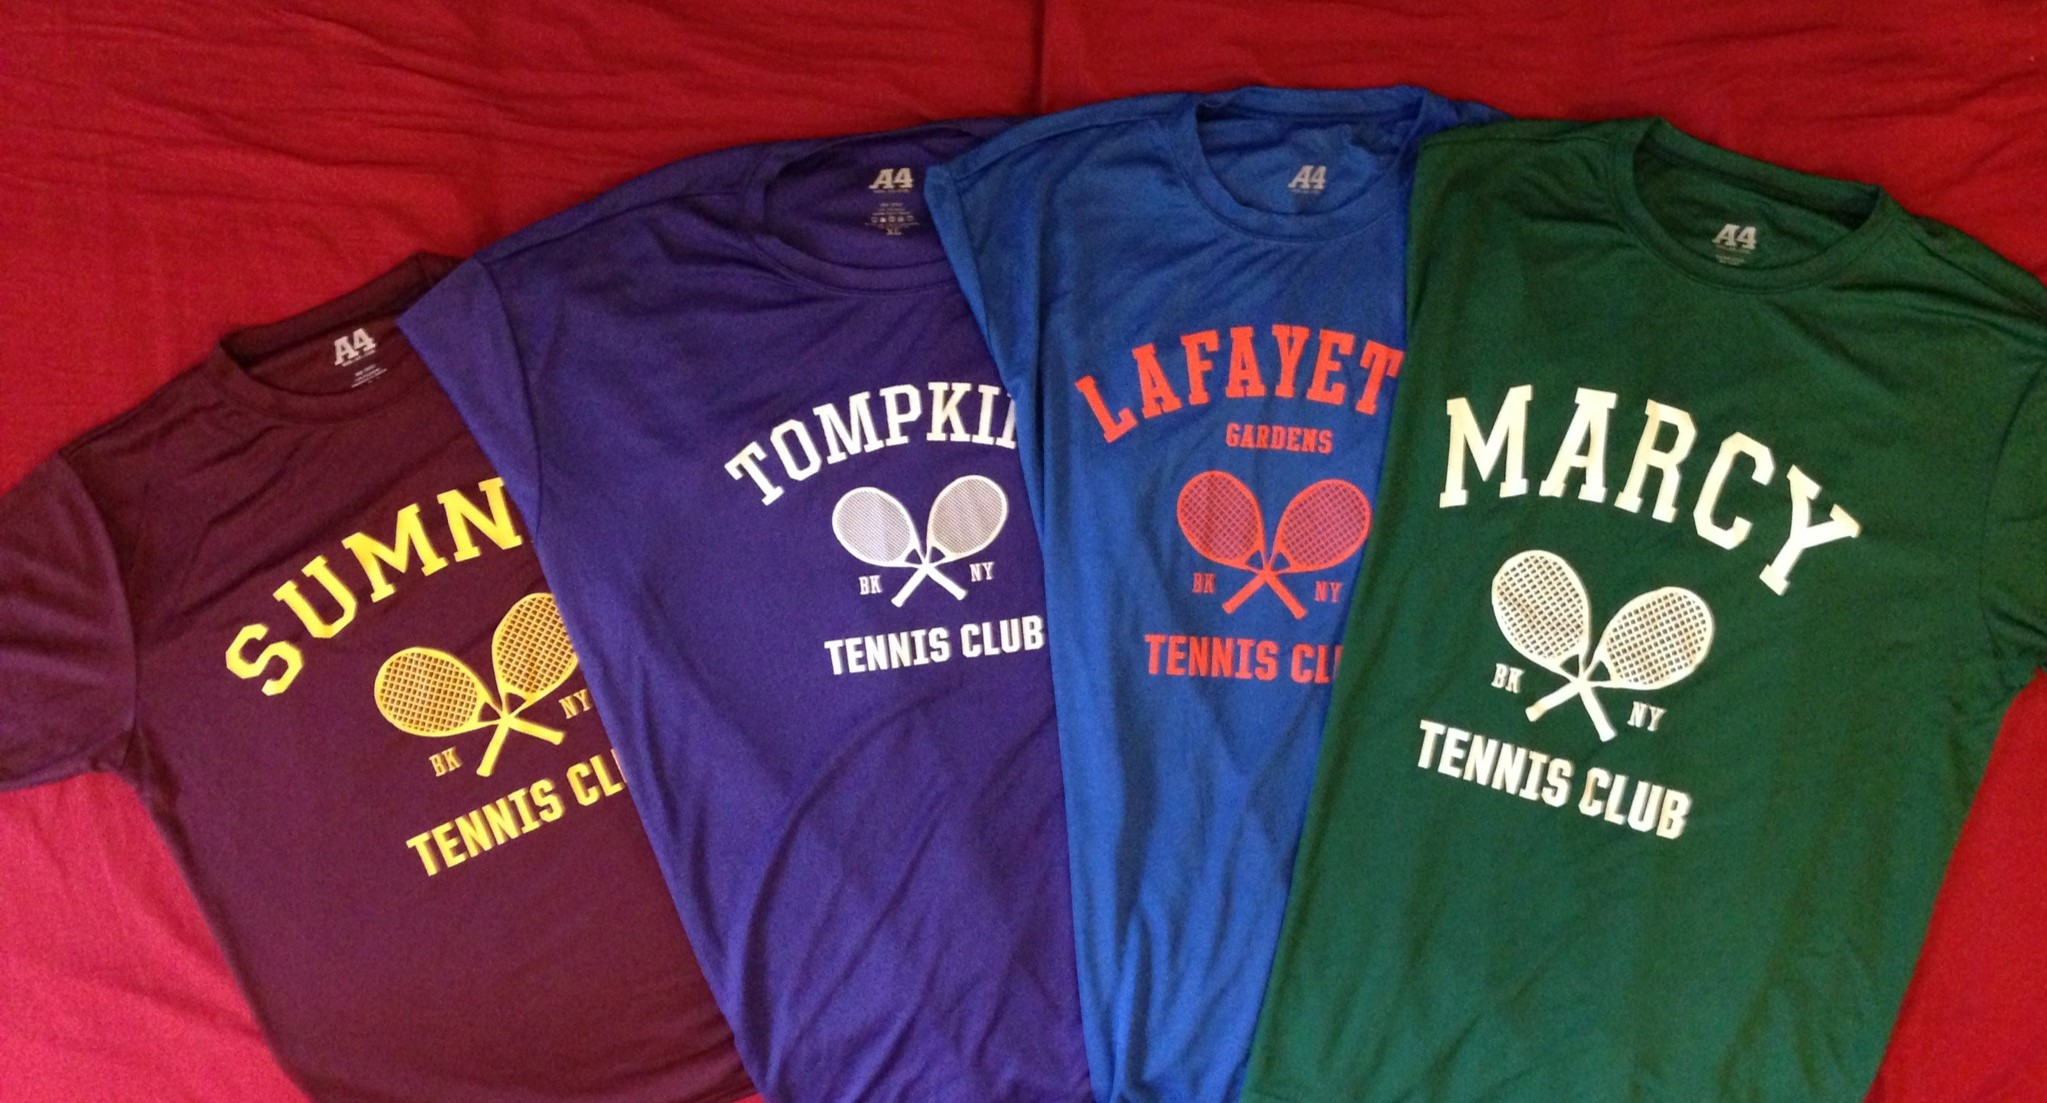 Kings County Tennis League Tshirts - Marcy, Sumner, Tompkins and Lafayette Gardens